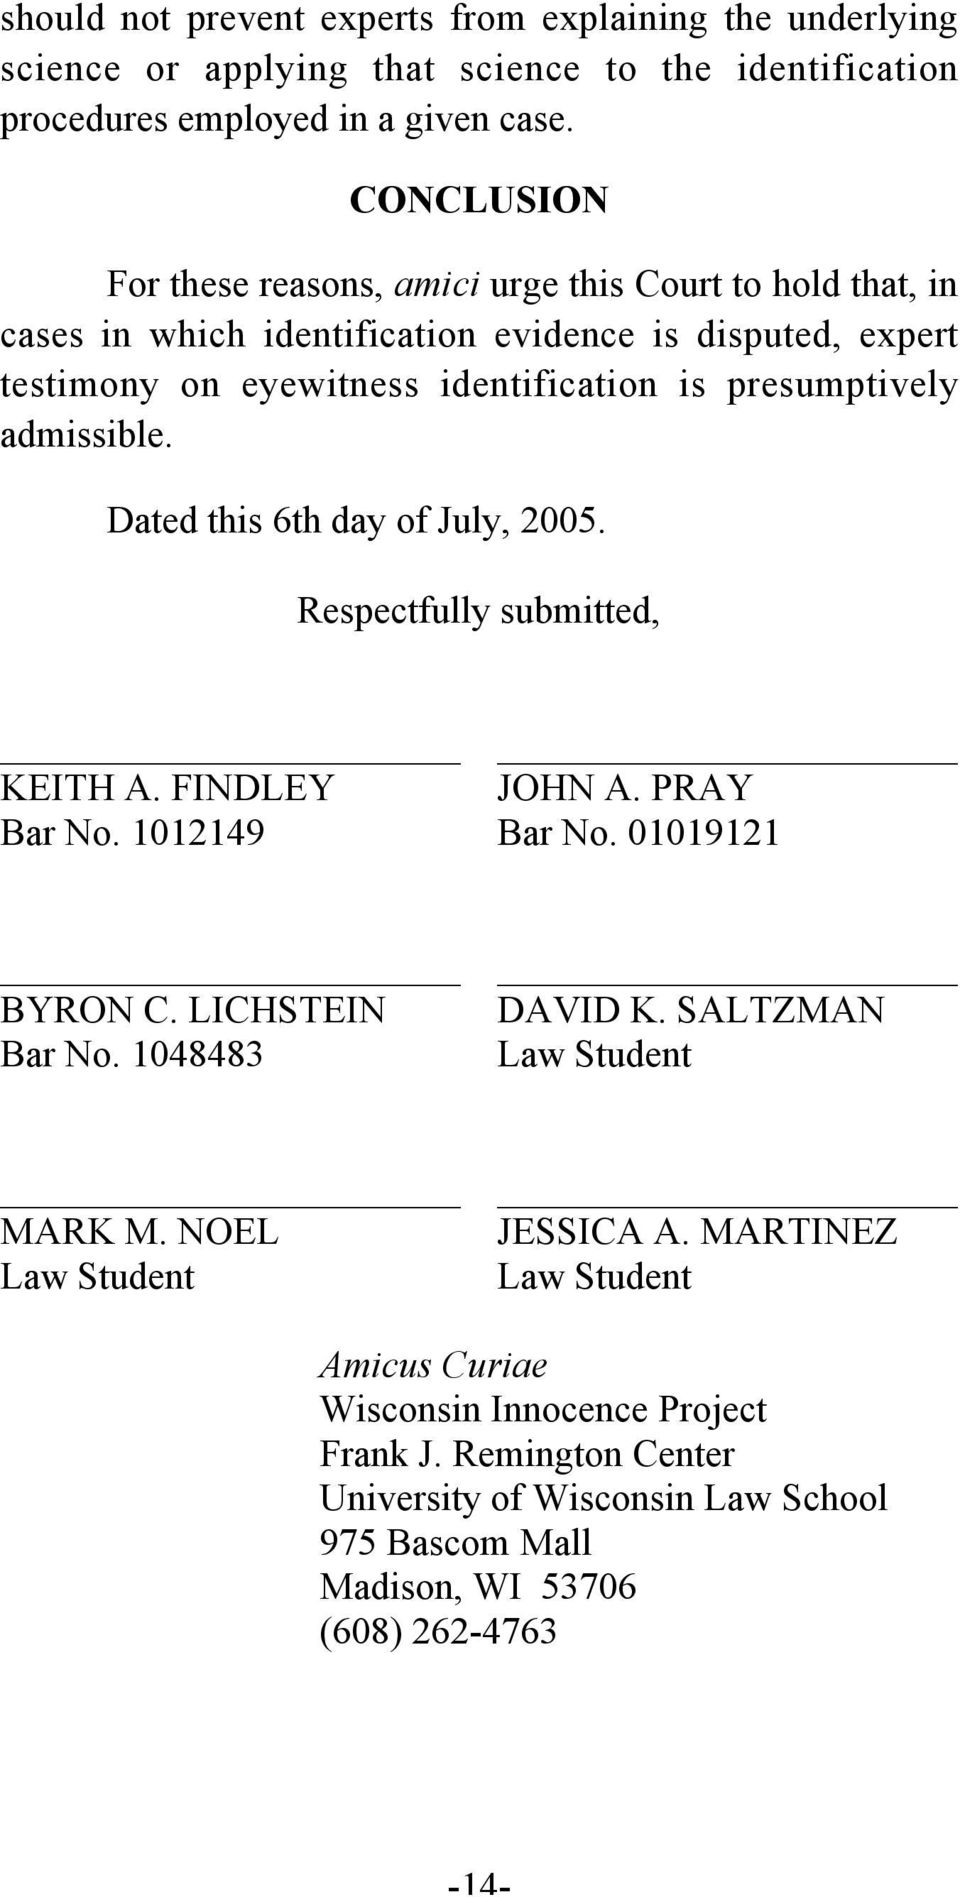 admissible. Dated this 6th day of July, 2005. Respectfully submitted, KEITH A. FINDLEY JOHN A. PRAY Bar No. 1012149 Bar No. 01019121 BYRON C. LICHSTEIN Bar No. 1048483 DAVID K.